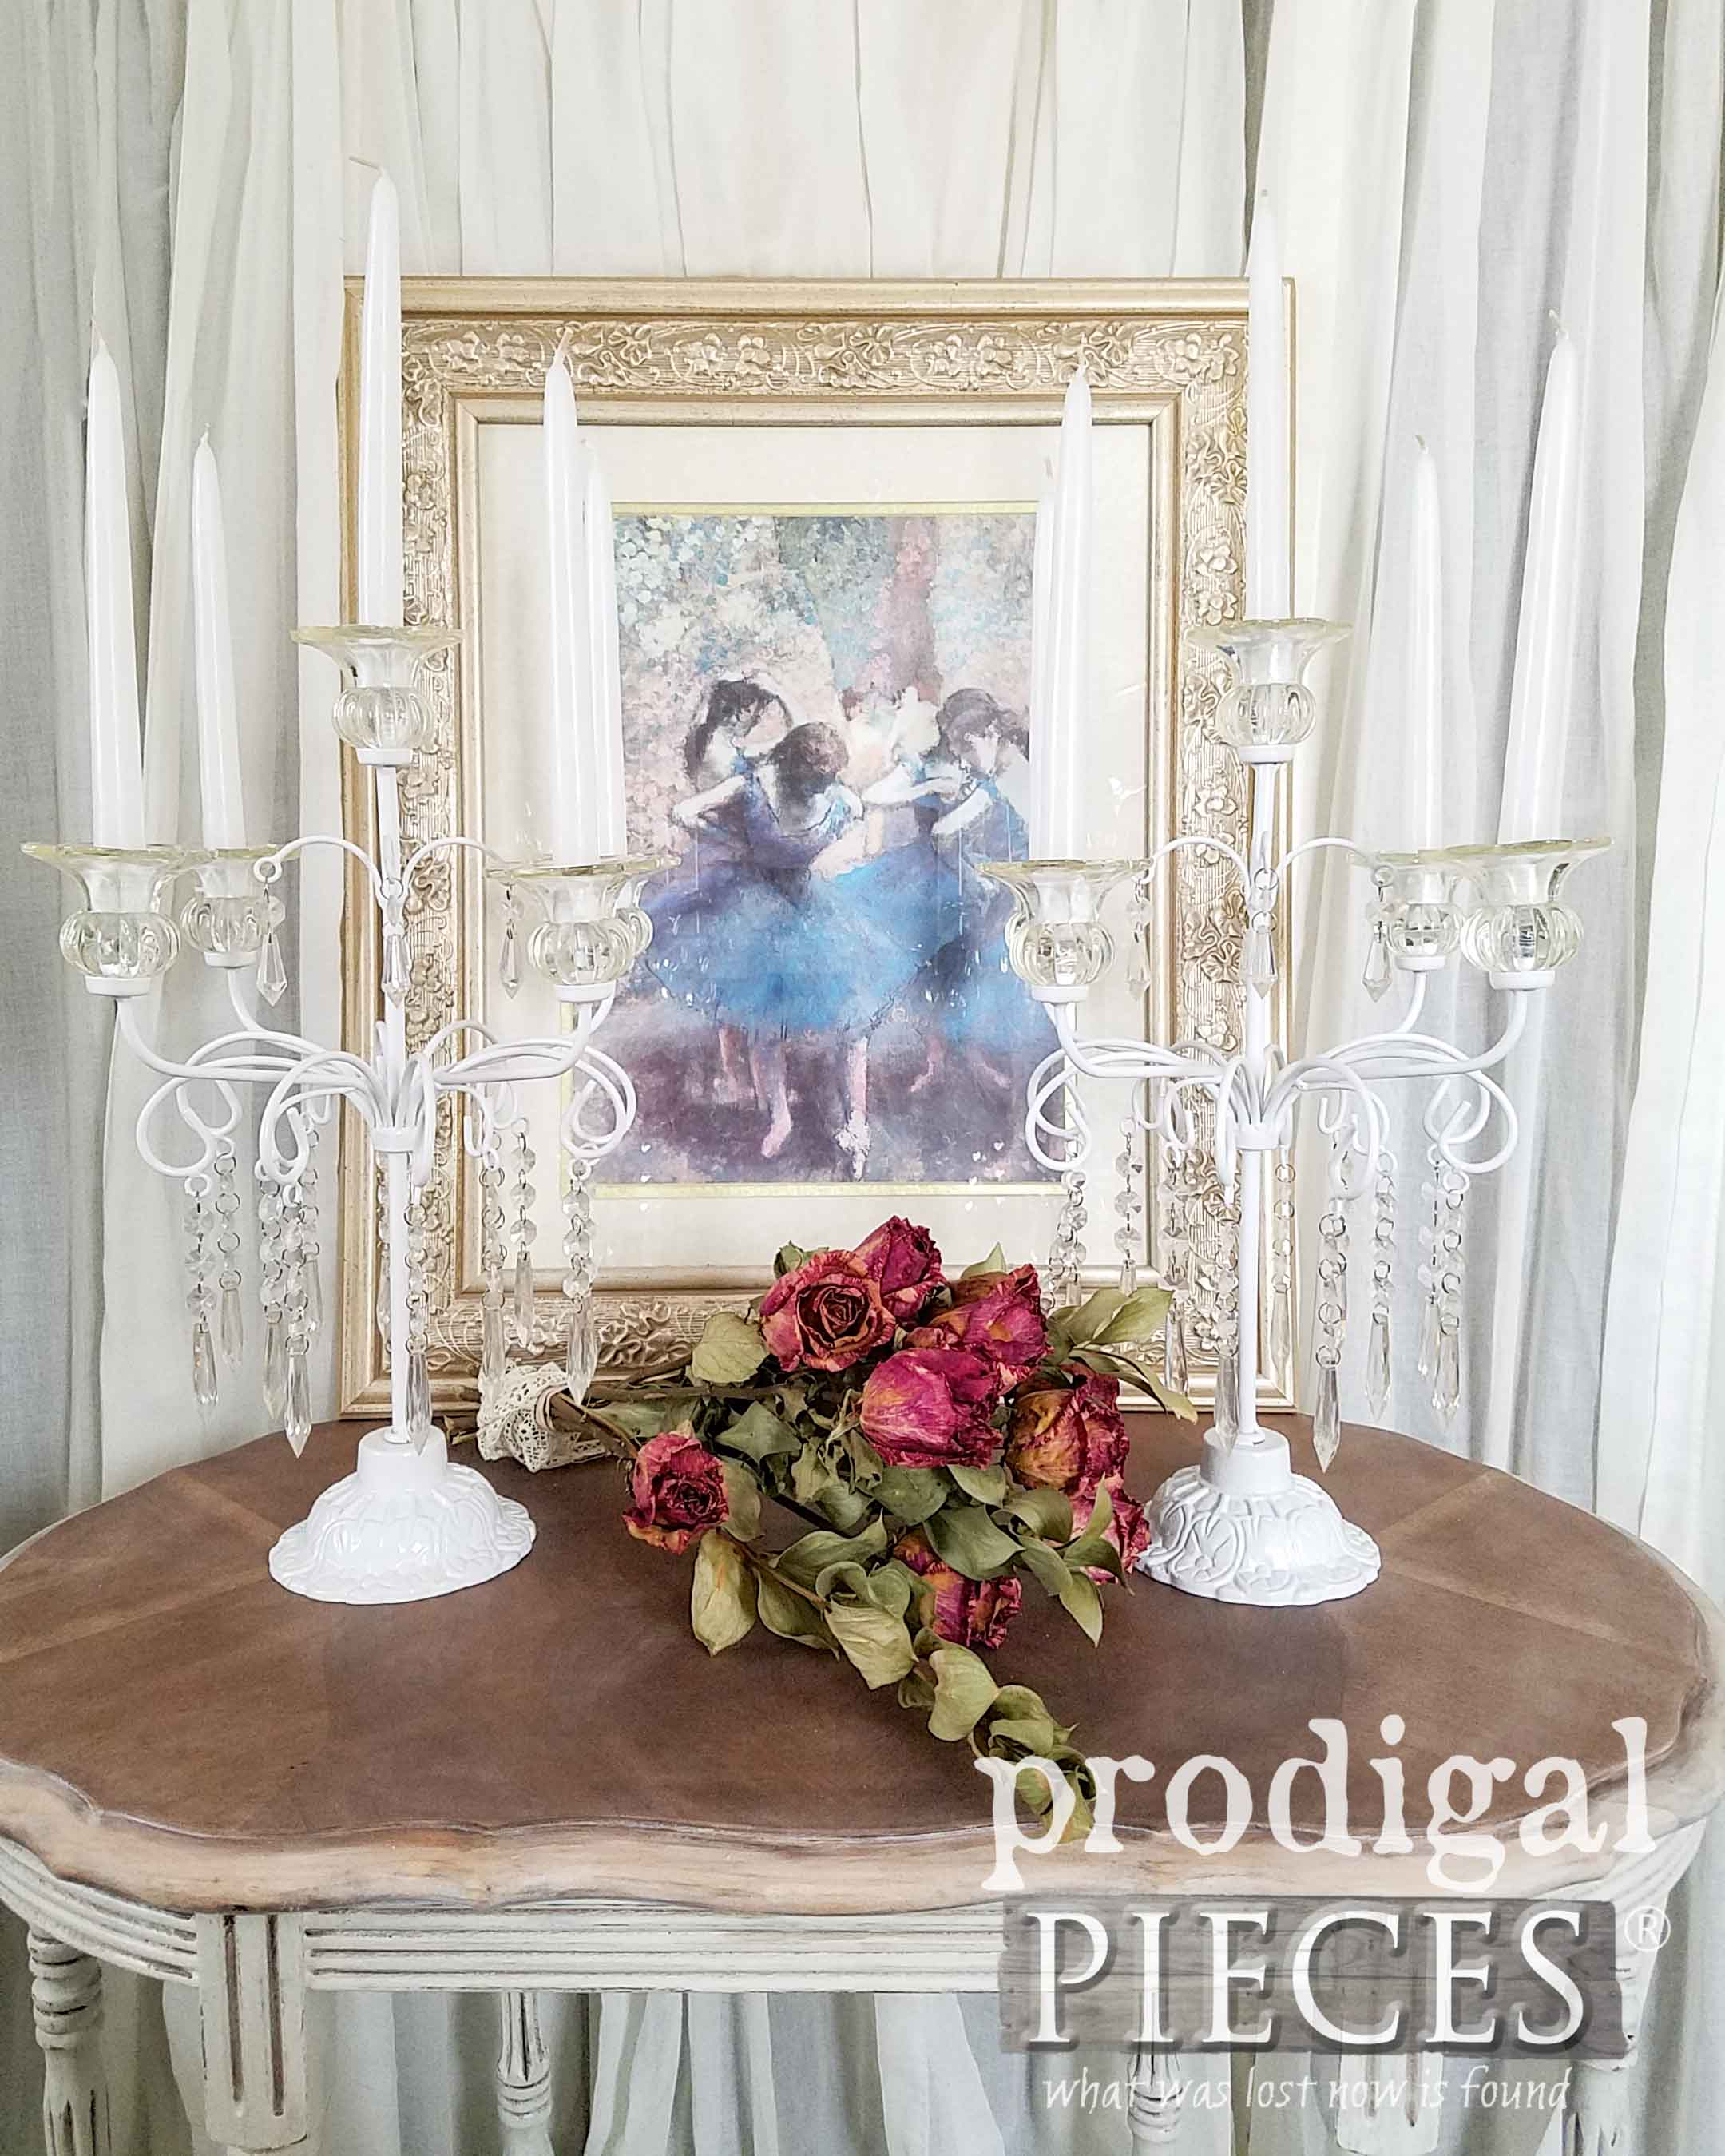 Set of 2 Vintage Candelabras with Shabby Chic Style by Larissa of Prodigal Pieces | prodigalpieces.com